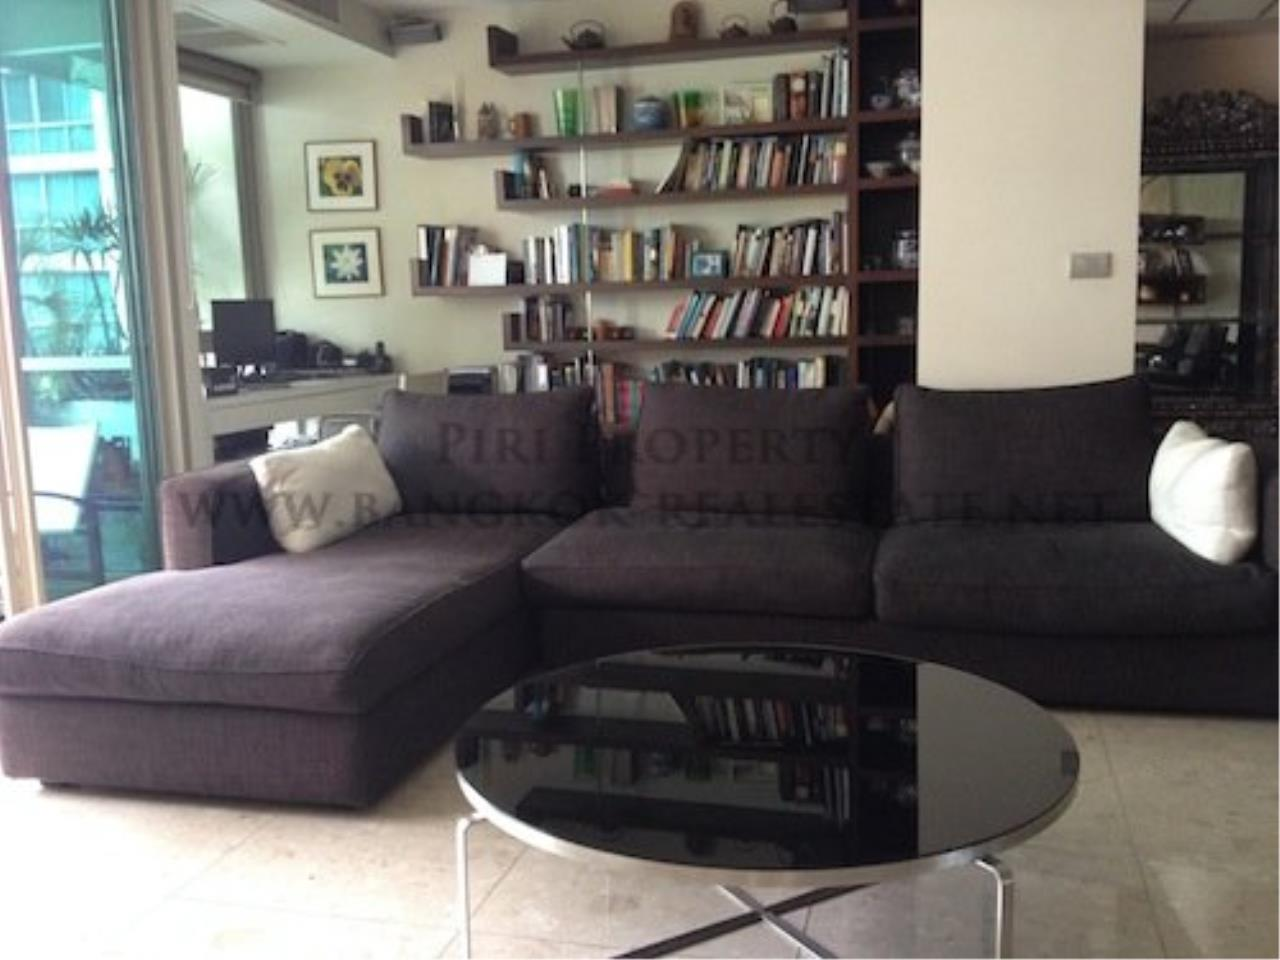 Piri Property Agency's Ficus Lane Condo - Nice 3 Bedroom Condo with 200 SQM in the Green 3